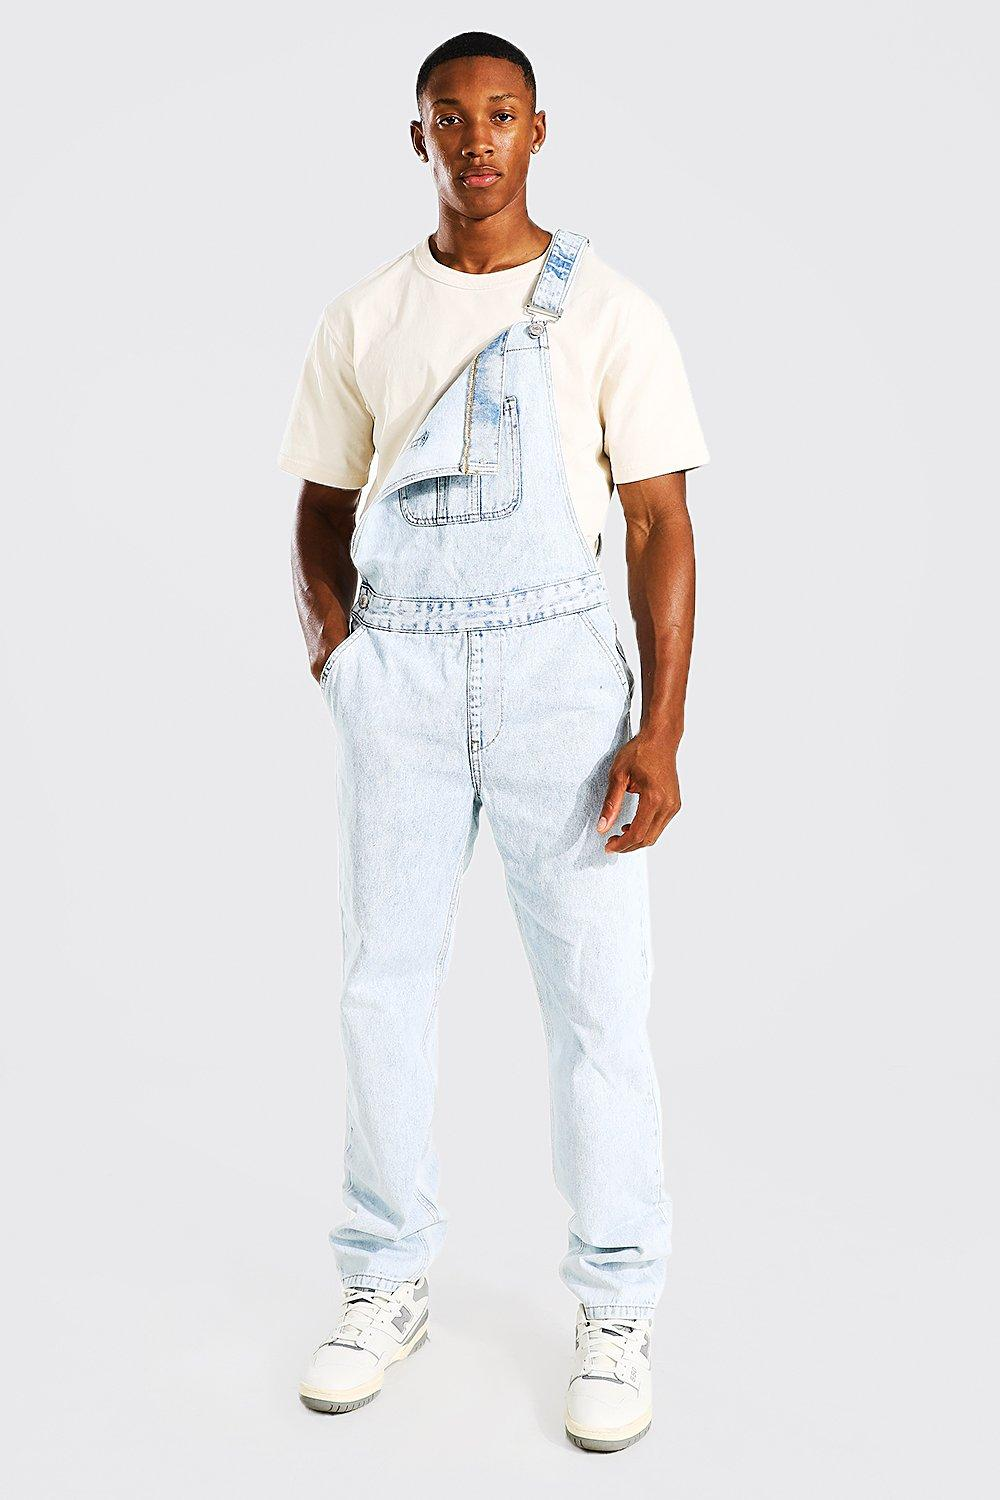 90s Outfits for Guys | Trendy, Party, Cool, Casaul Mens Relaxed Fit Long Dungaree - Blue $33.00 AT vintagedancer.com